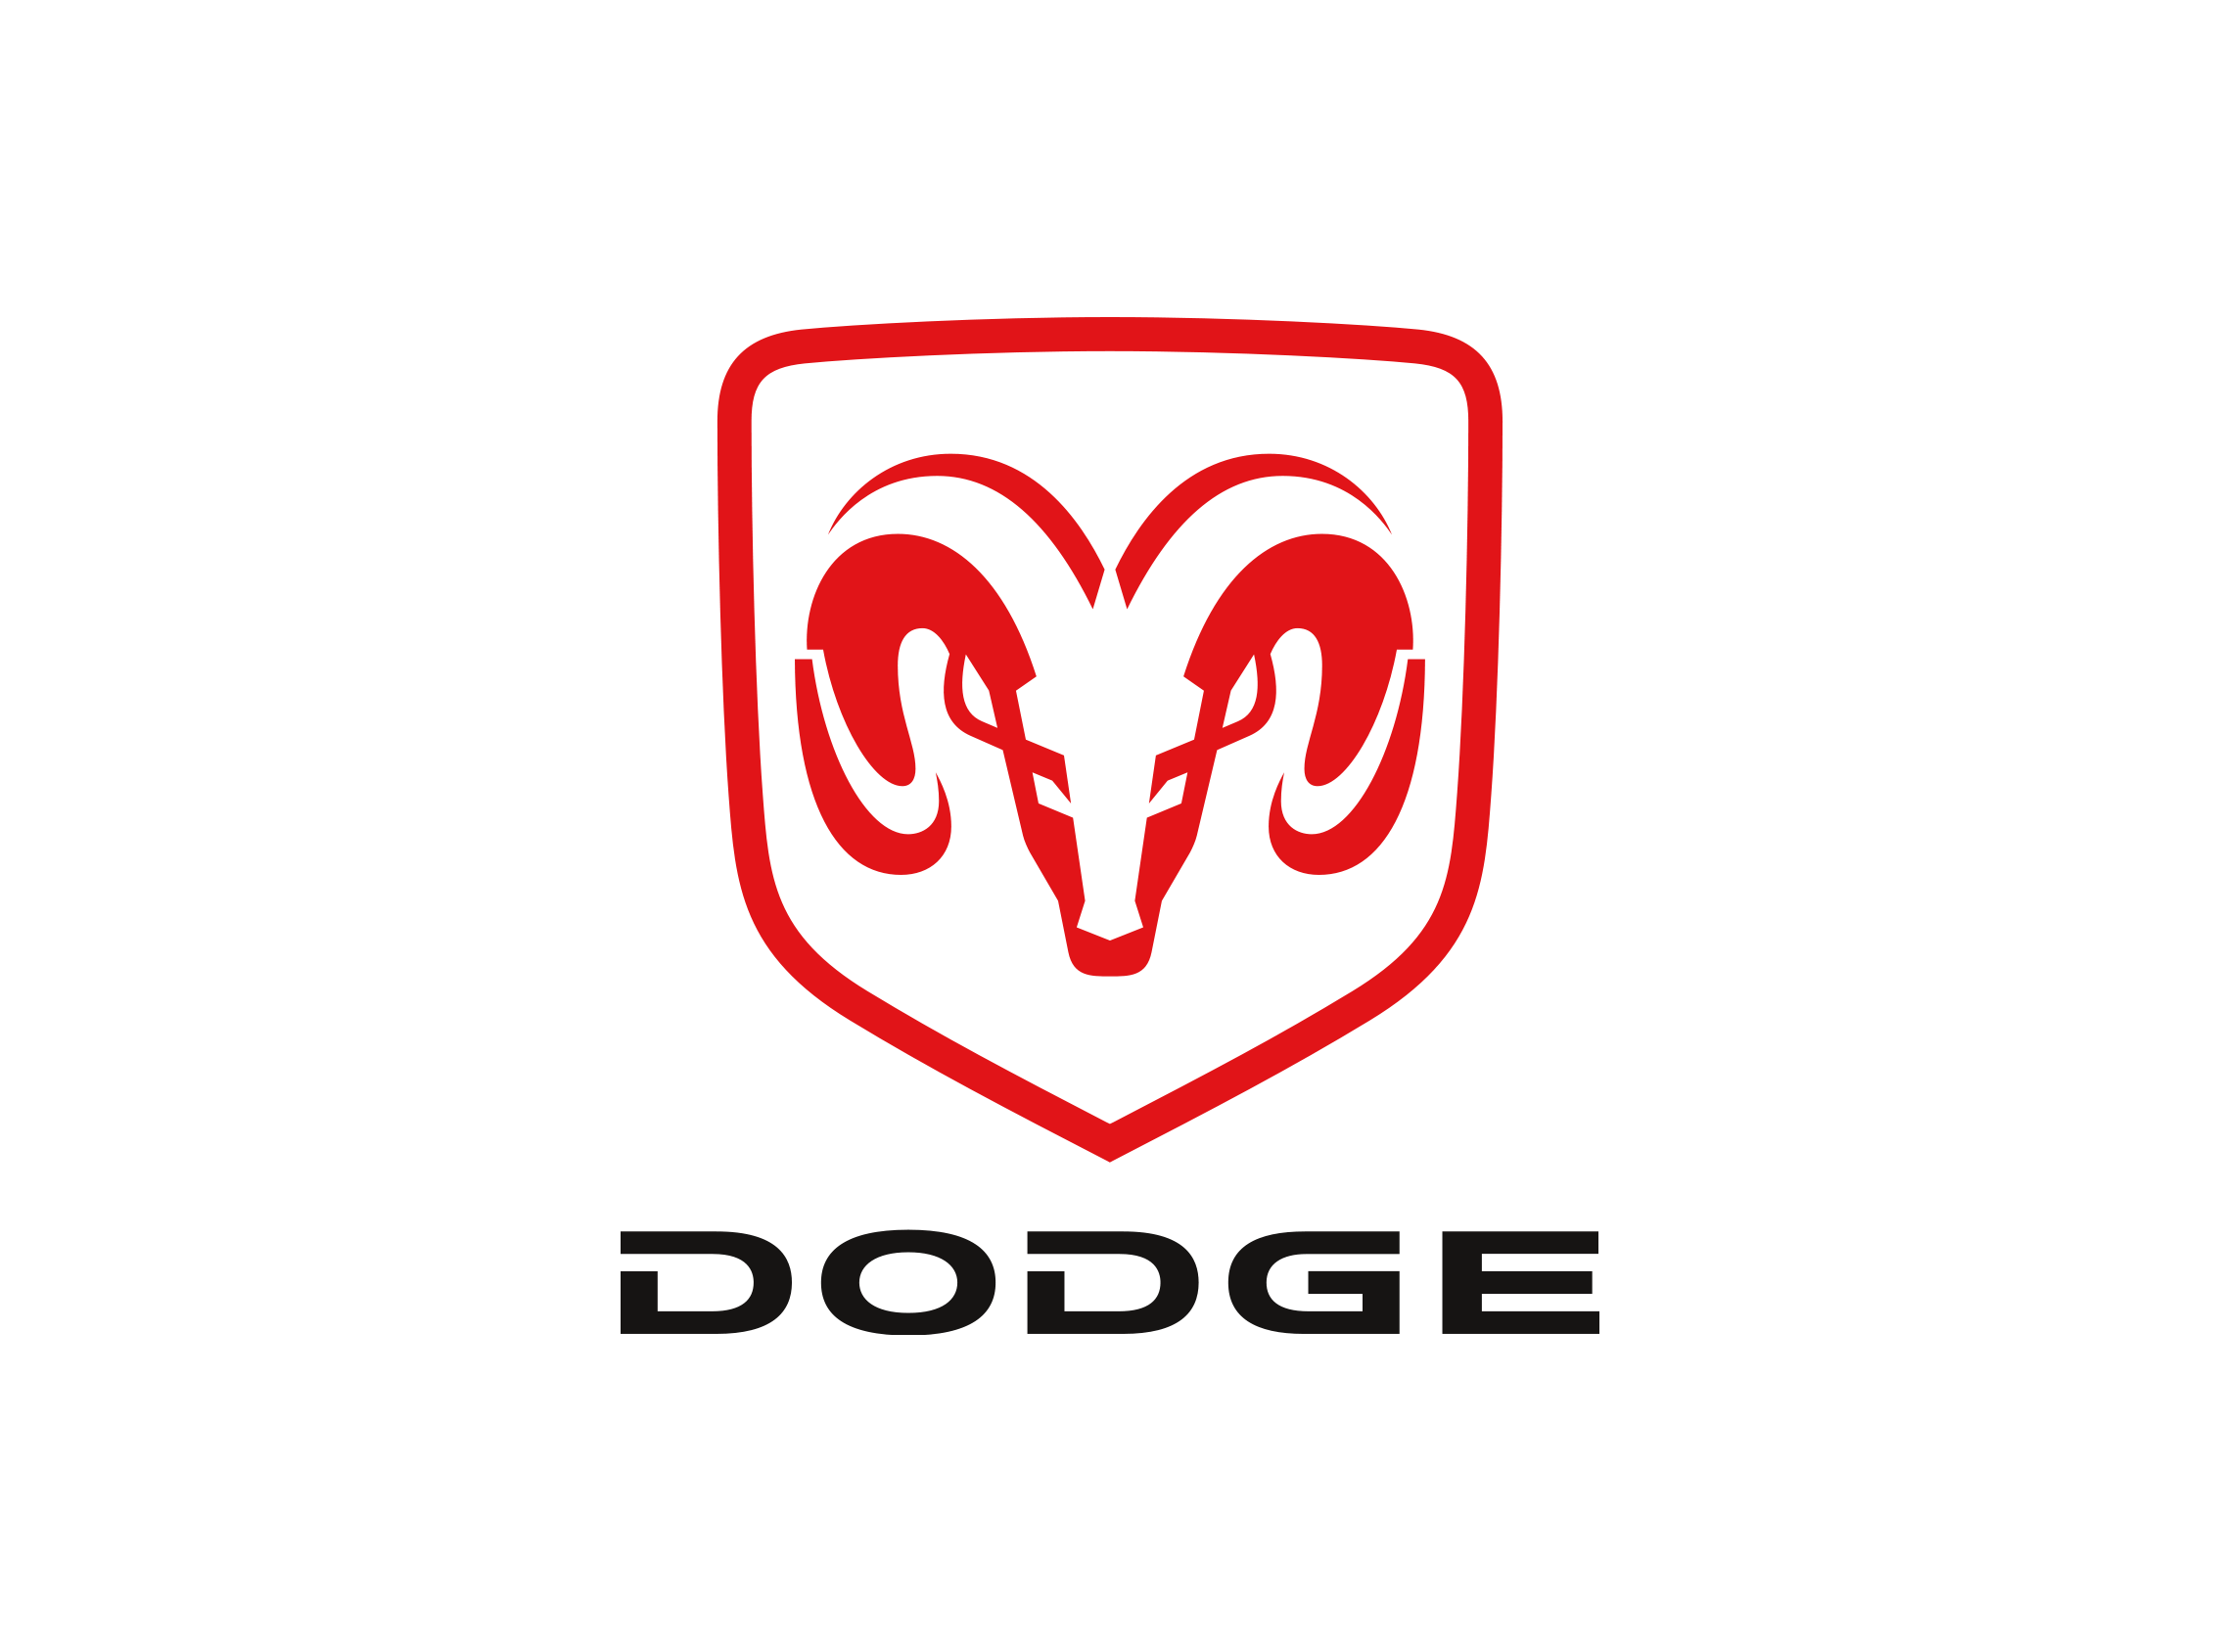 DODGE MOTOR IMPORT BRANDS VOITURE IMPORT USA MIAMI IMPORT VOITURE EUROP IMPORT USA MOTOR IMPORT7 - ASTON MARTIN importation voiture des Etats Unis ASTON MARTIN votre mandataire automobile usa